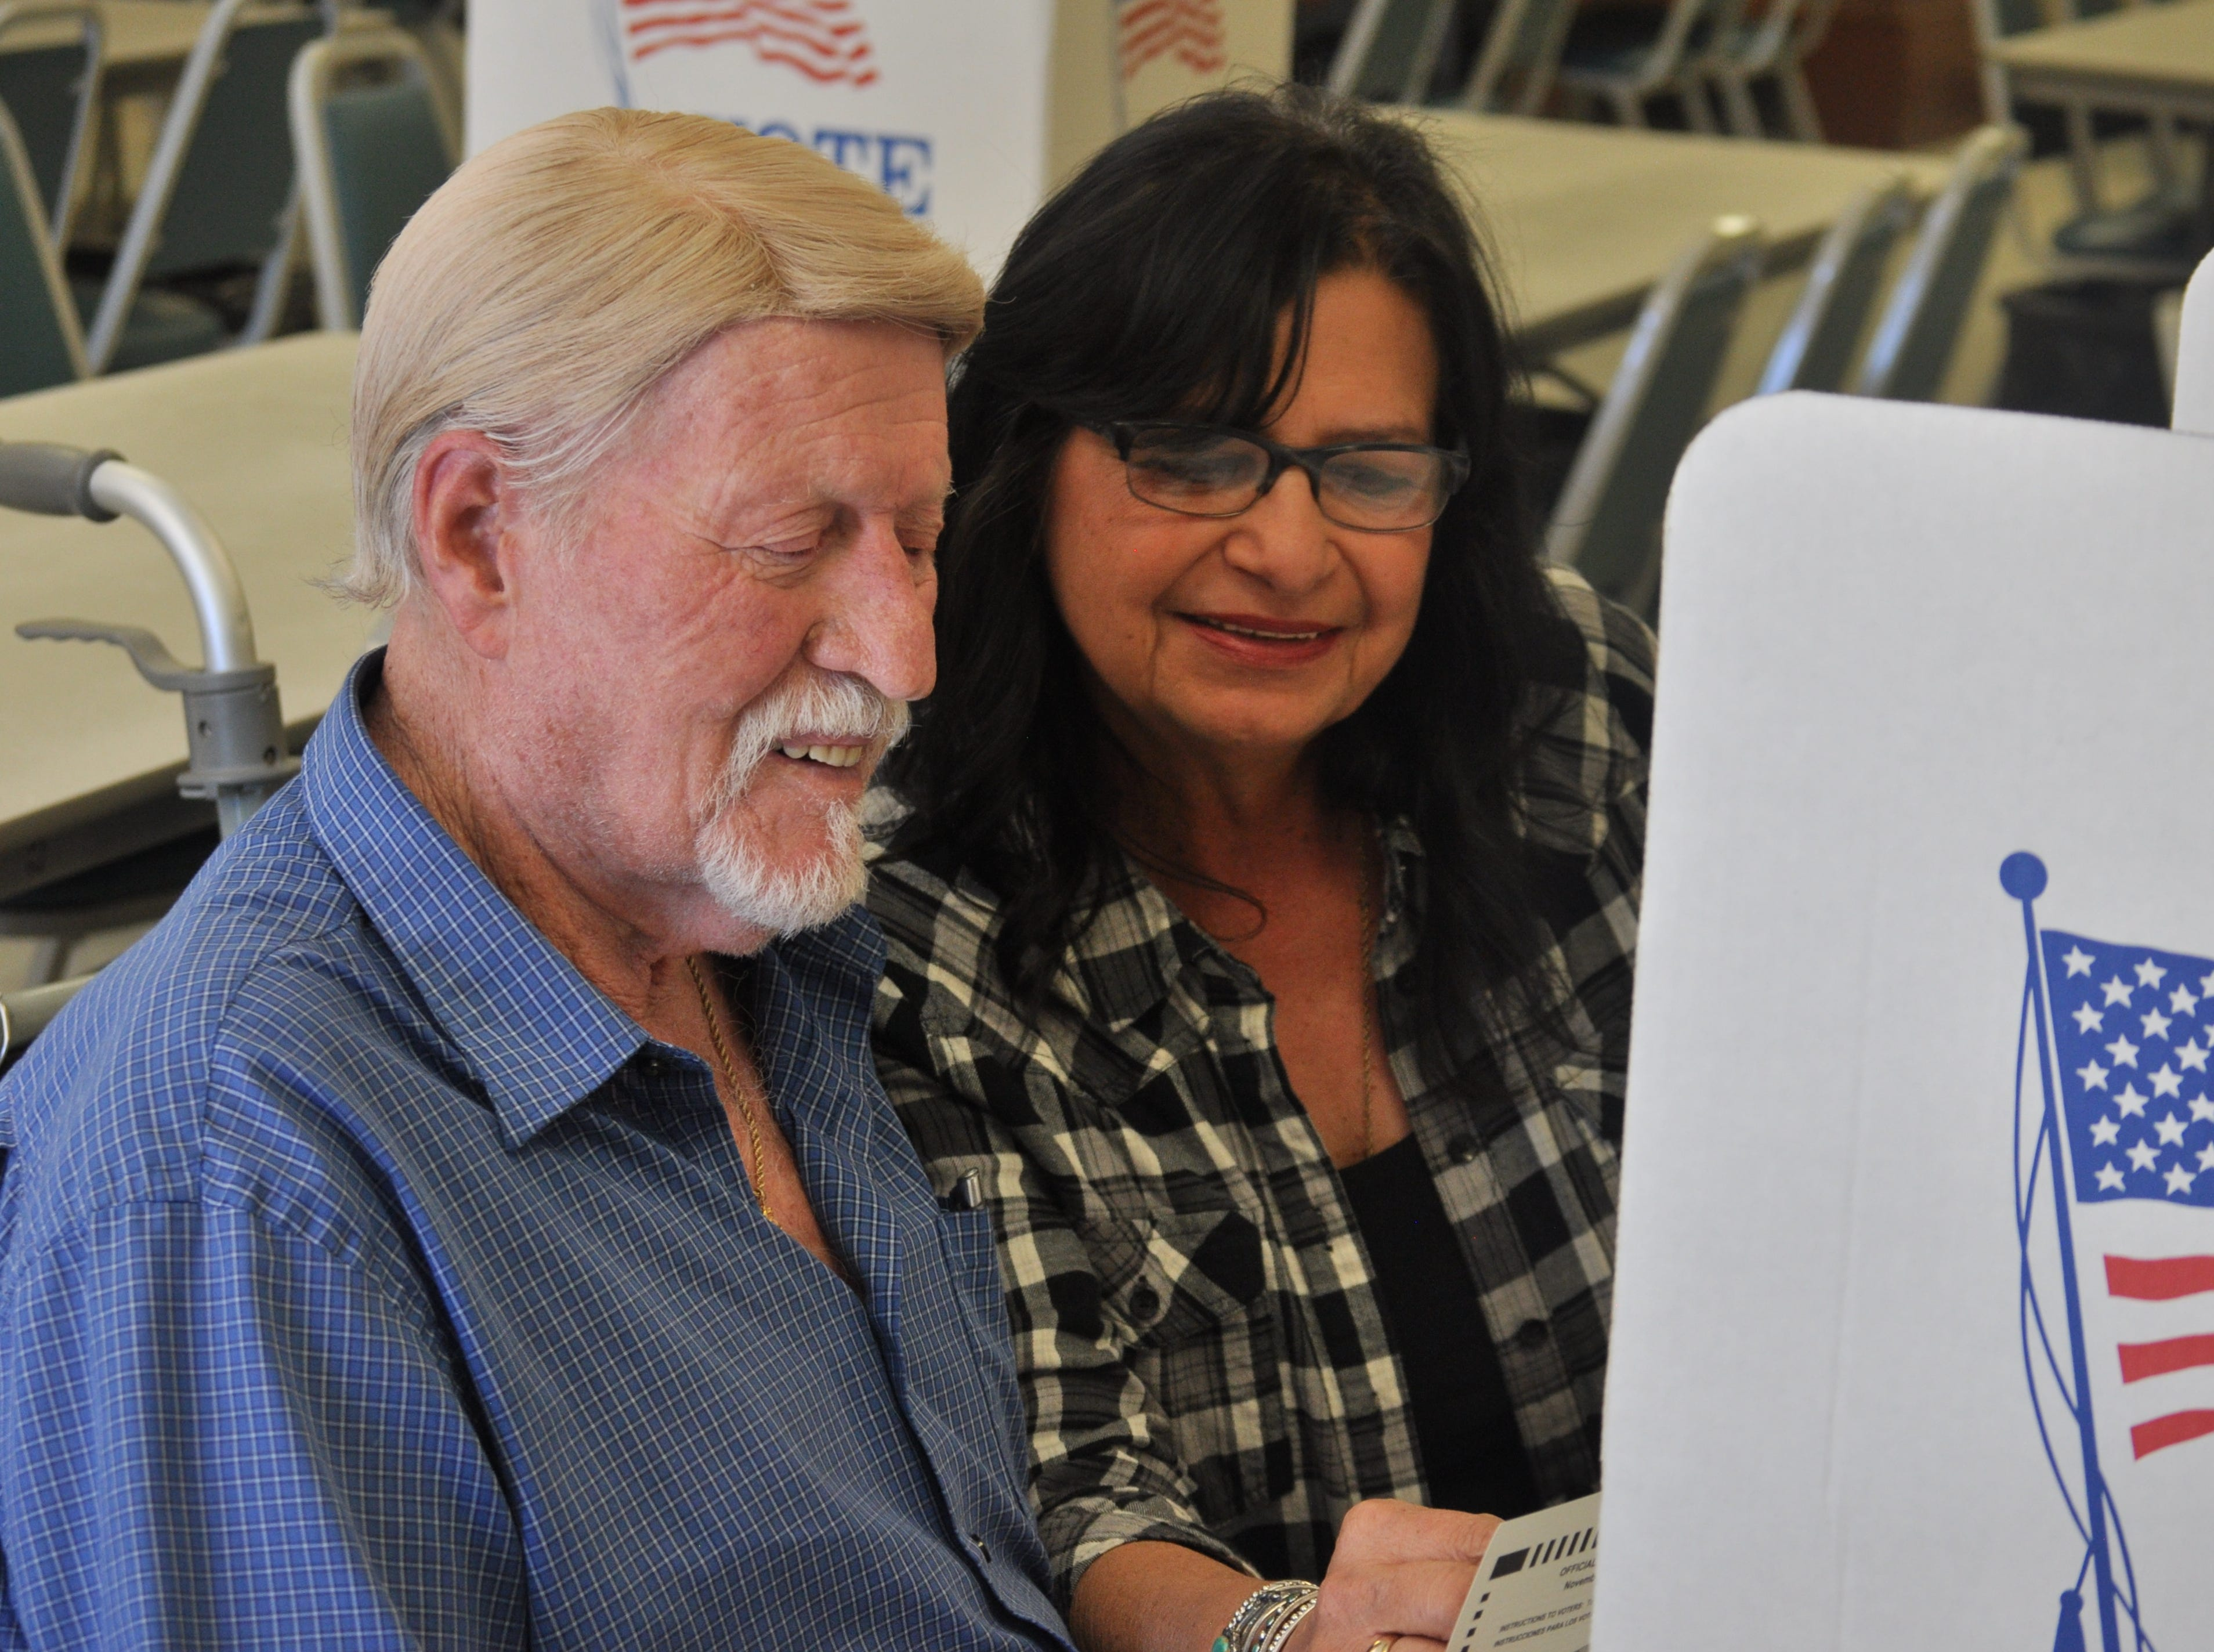 Claude Tabor (left) and Josie Tabor cast their ballots, Nov. 6, 2011 at the Veterans of Foreign Wars Carlsbad post.